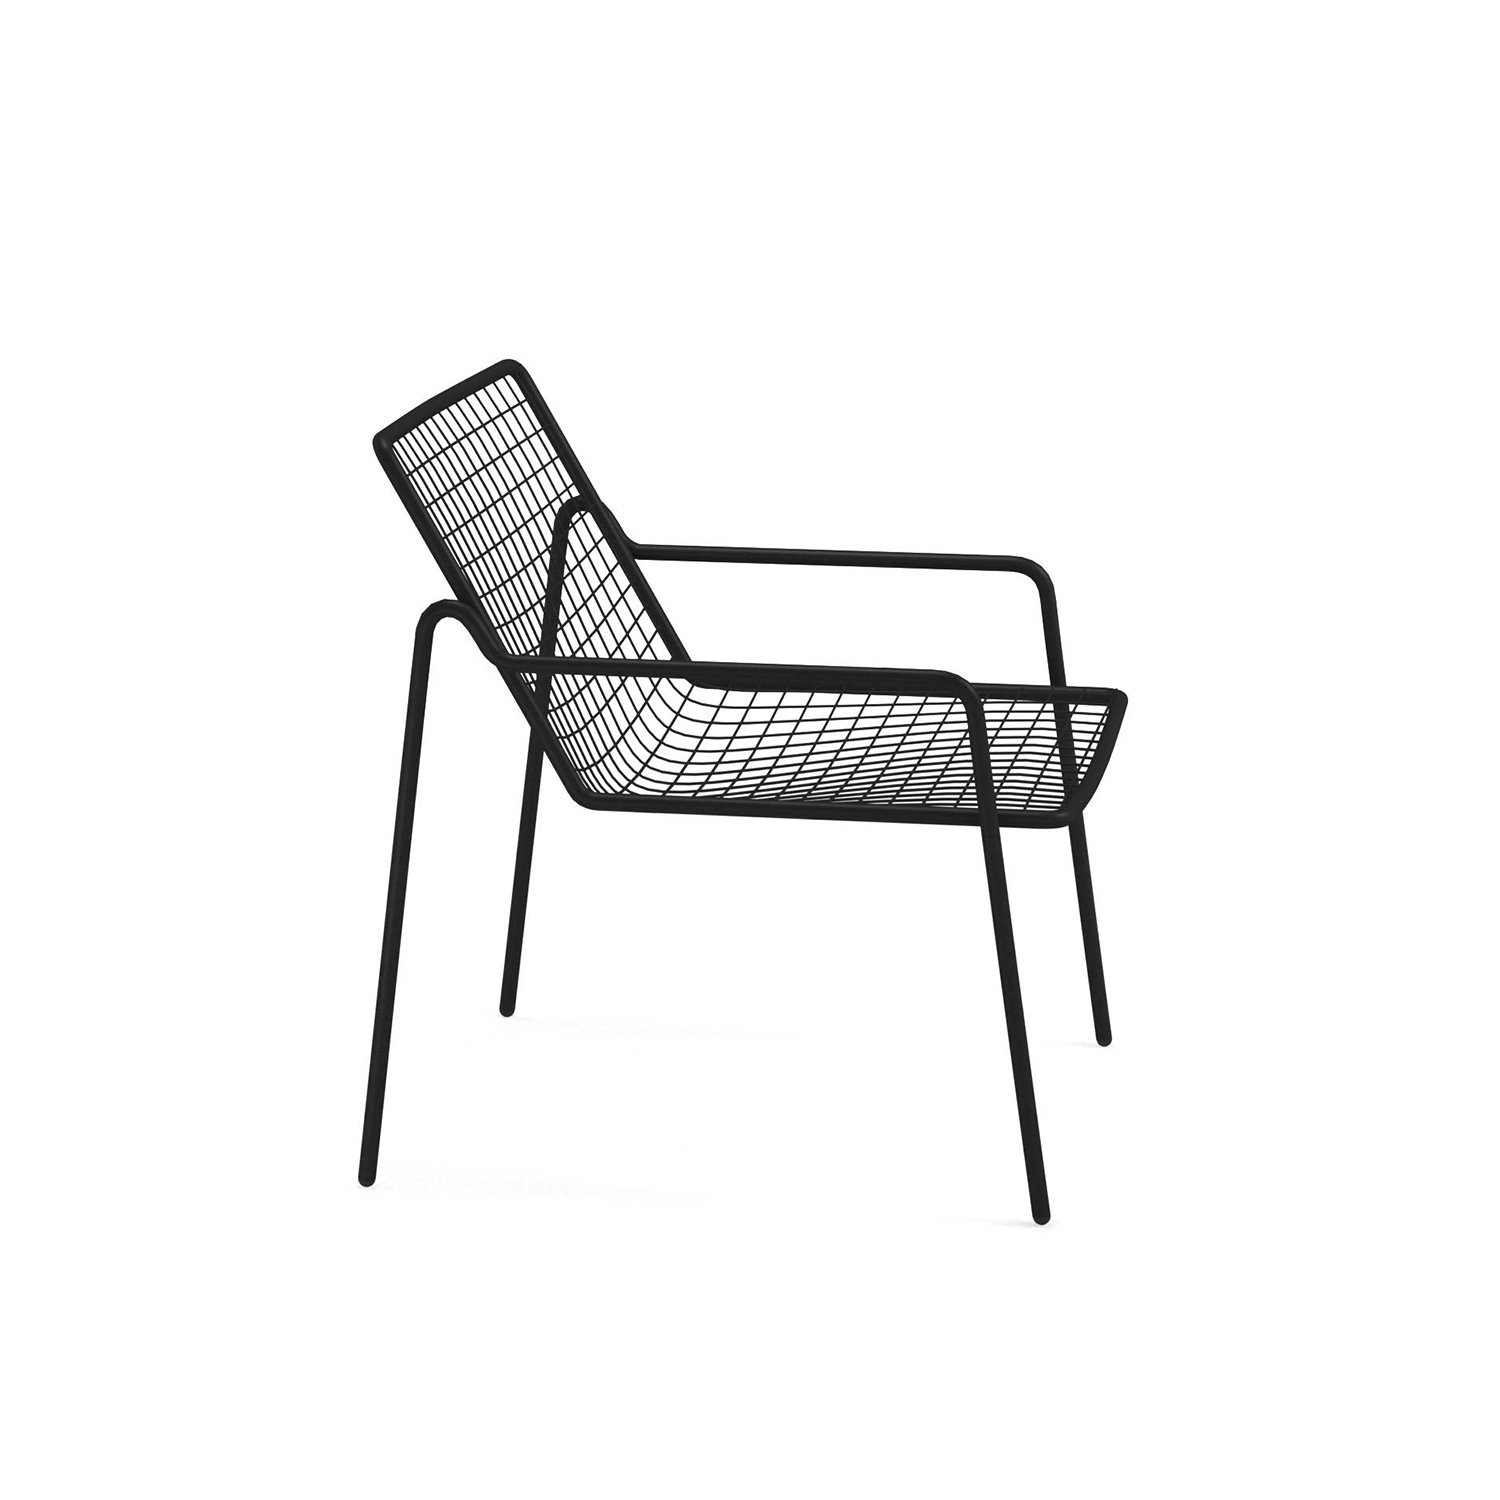 Rio R50 Lounge Chair - Set of 2 - <p>RIO R50 is an expertly crafted re-edition of the historic model Rio of the 70s. RIO R50 has a frame in ASFORM steel tube, high-quality steel with high mechanical performance and high resistance to weight. </p>